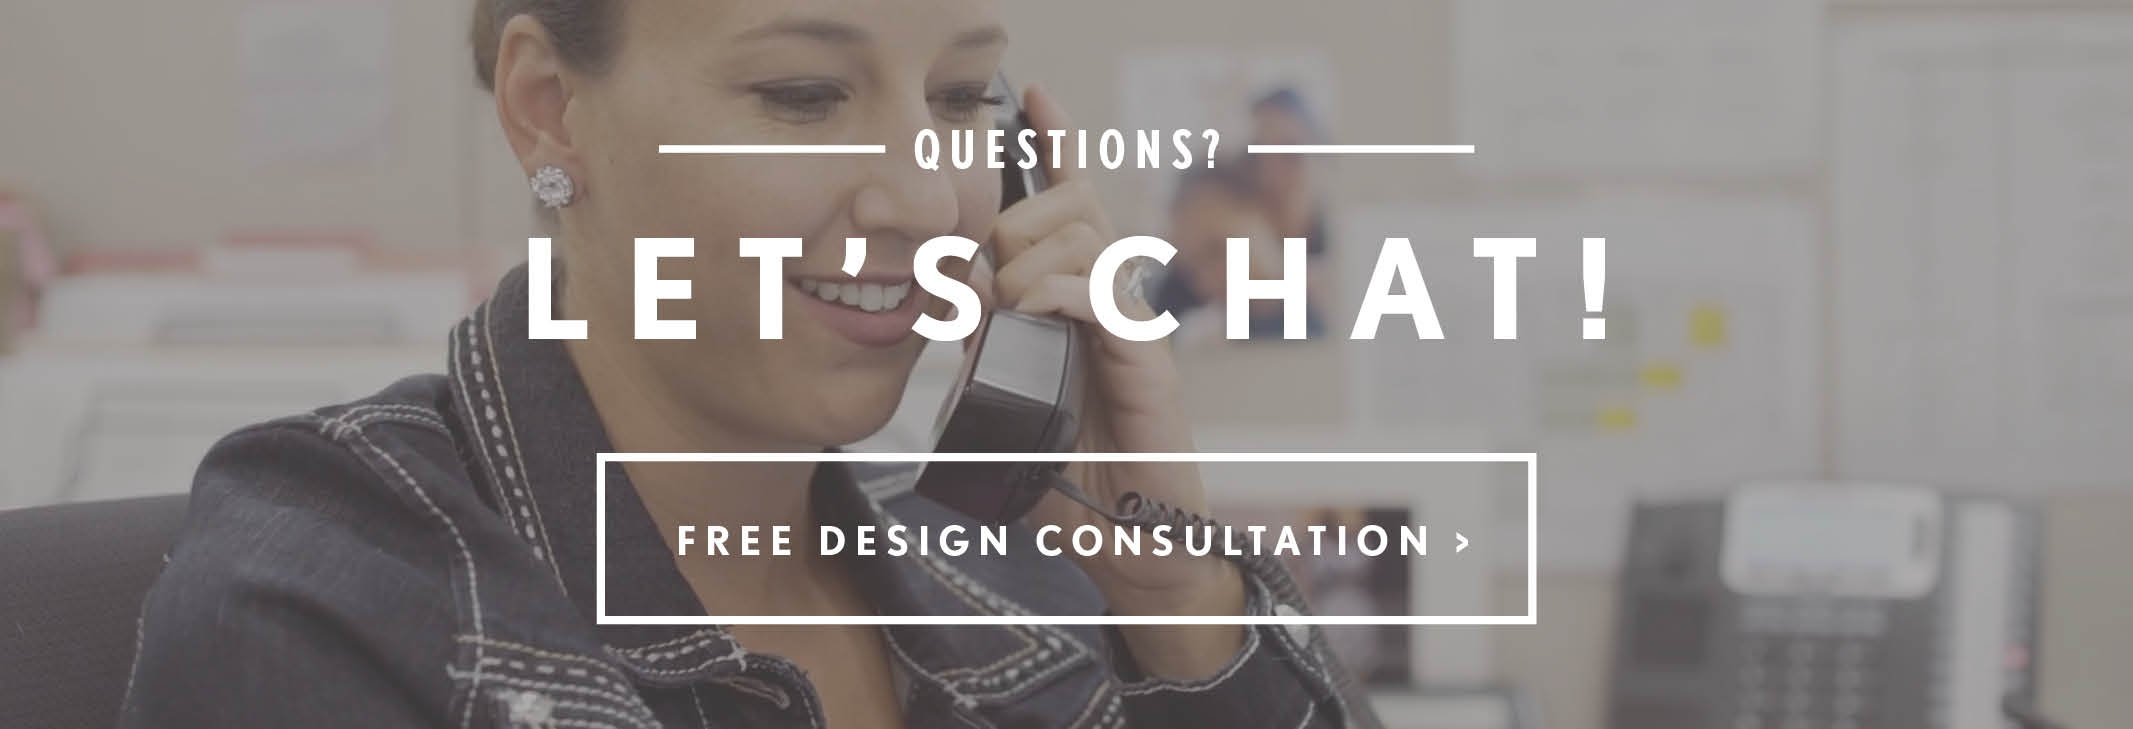 We look forward to working with you! Sign up for a free design consultation!